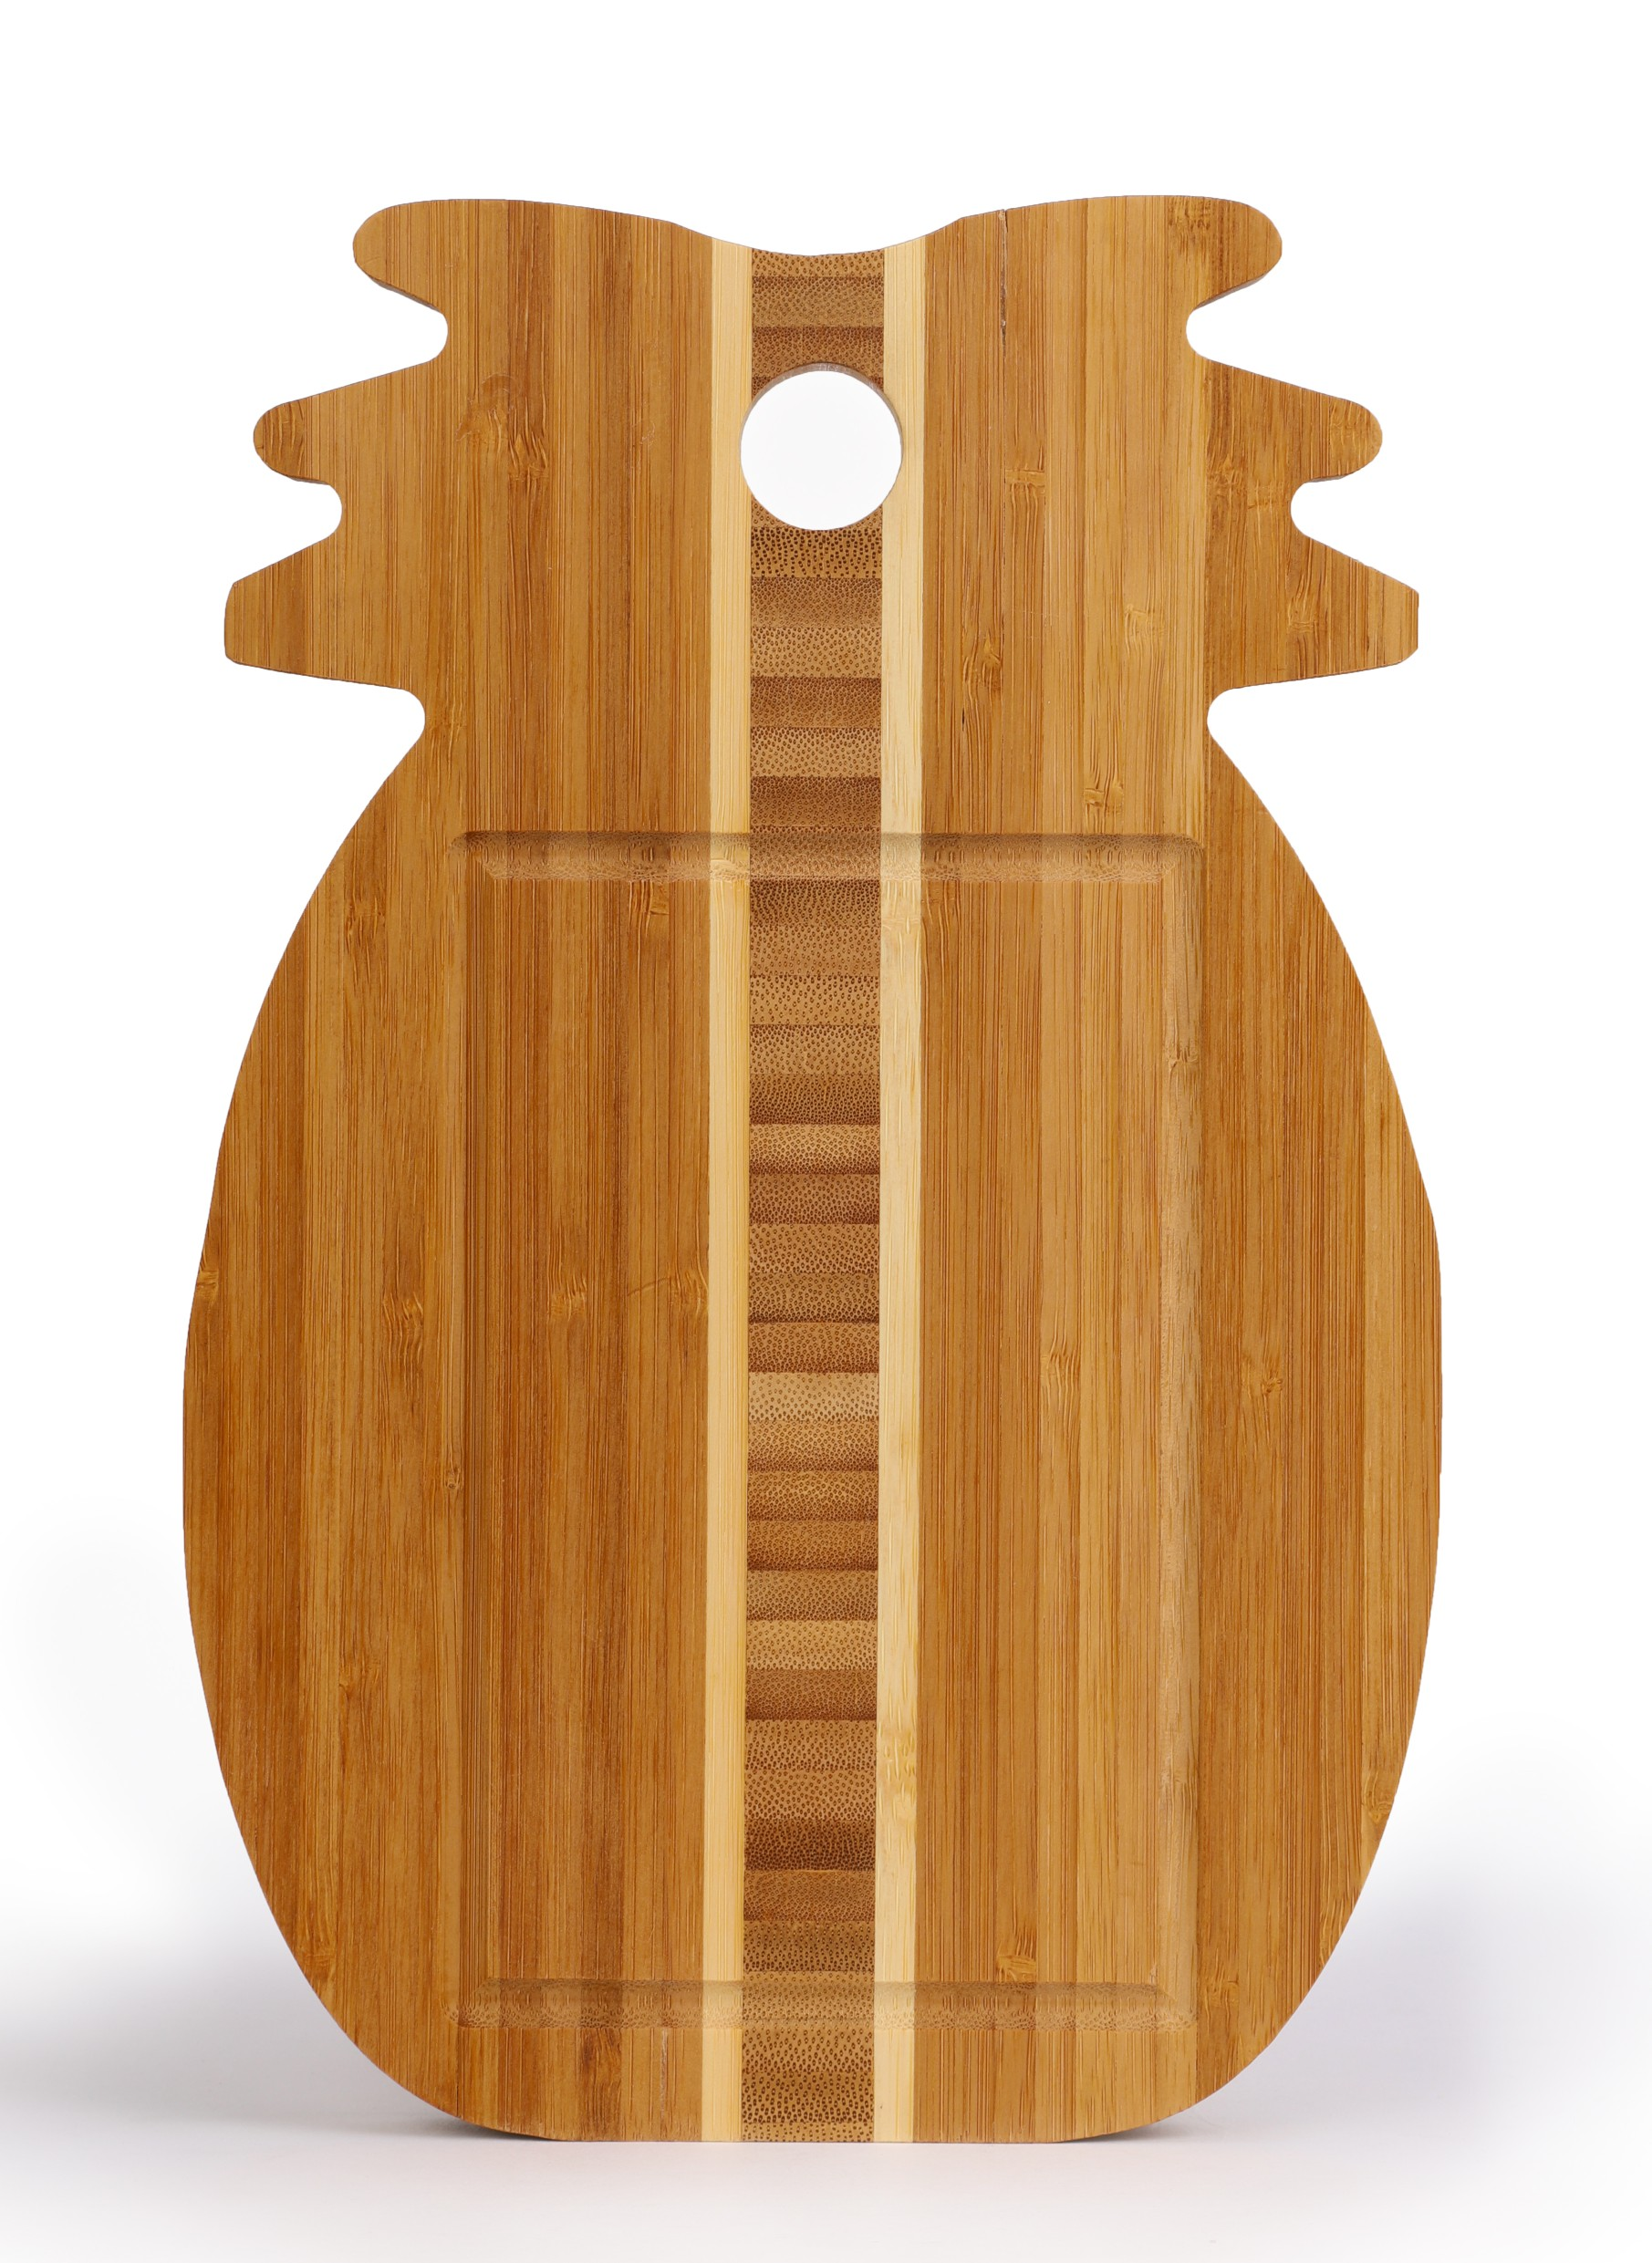 Pineapple Serving Board Wood Trays in Brown Colour by Living Essence